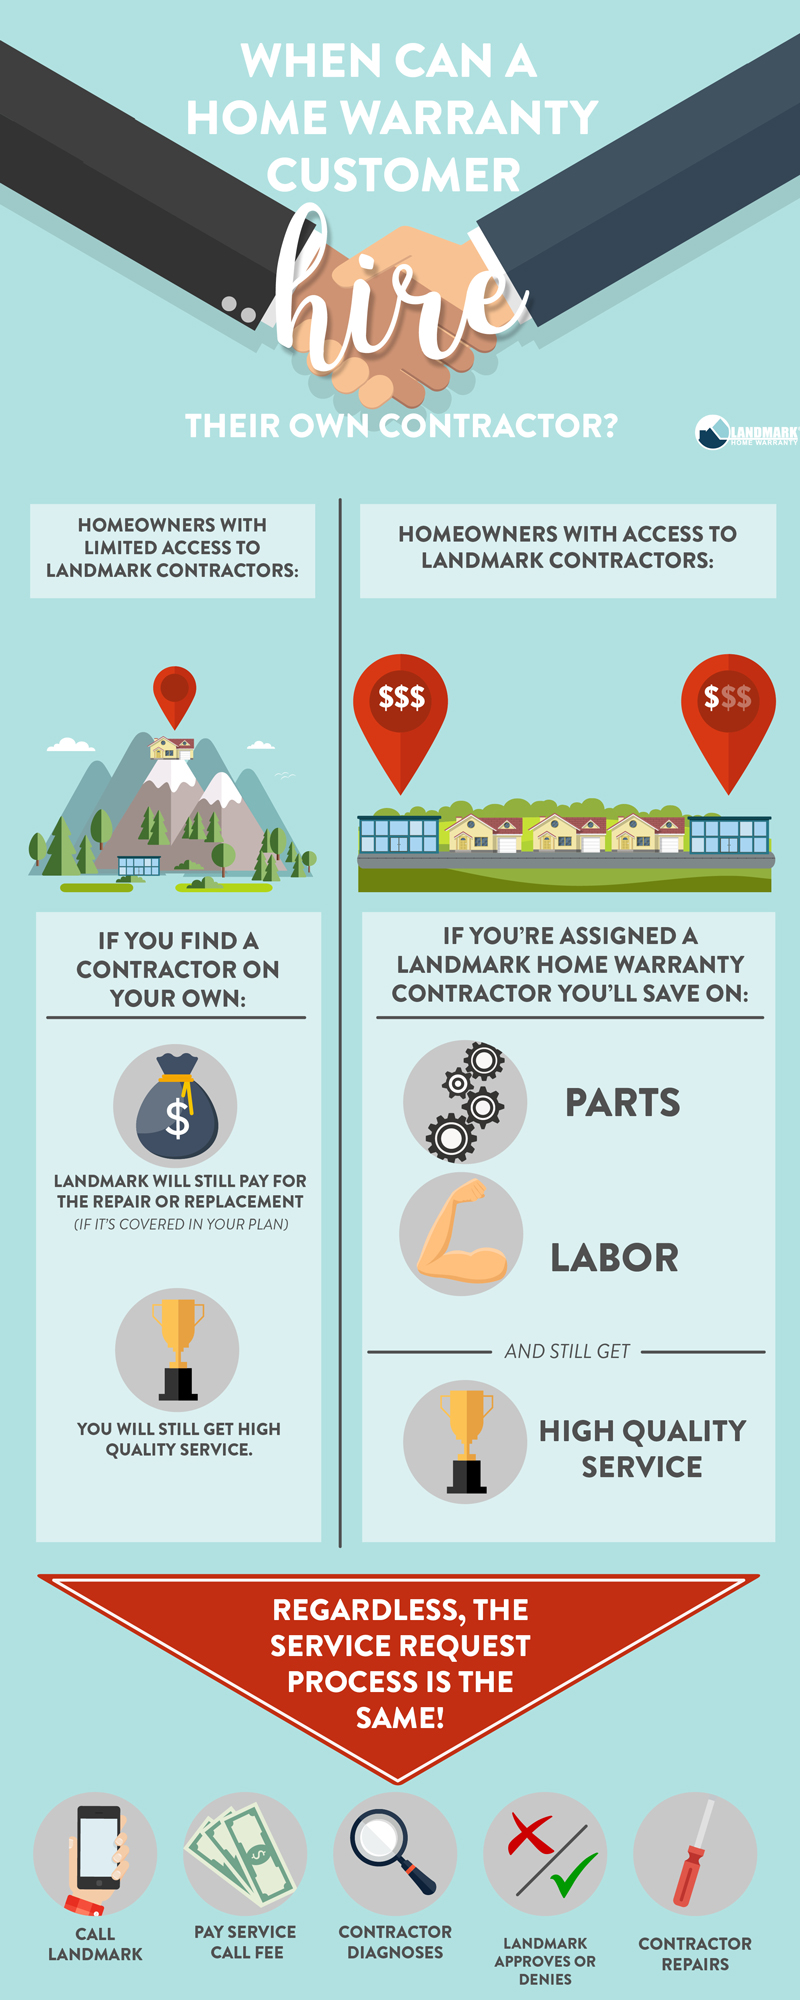 Find A Contractor >> When Can A Home Warranty Customer Hire Their Own Contractor